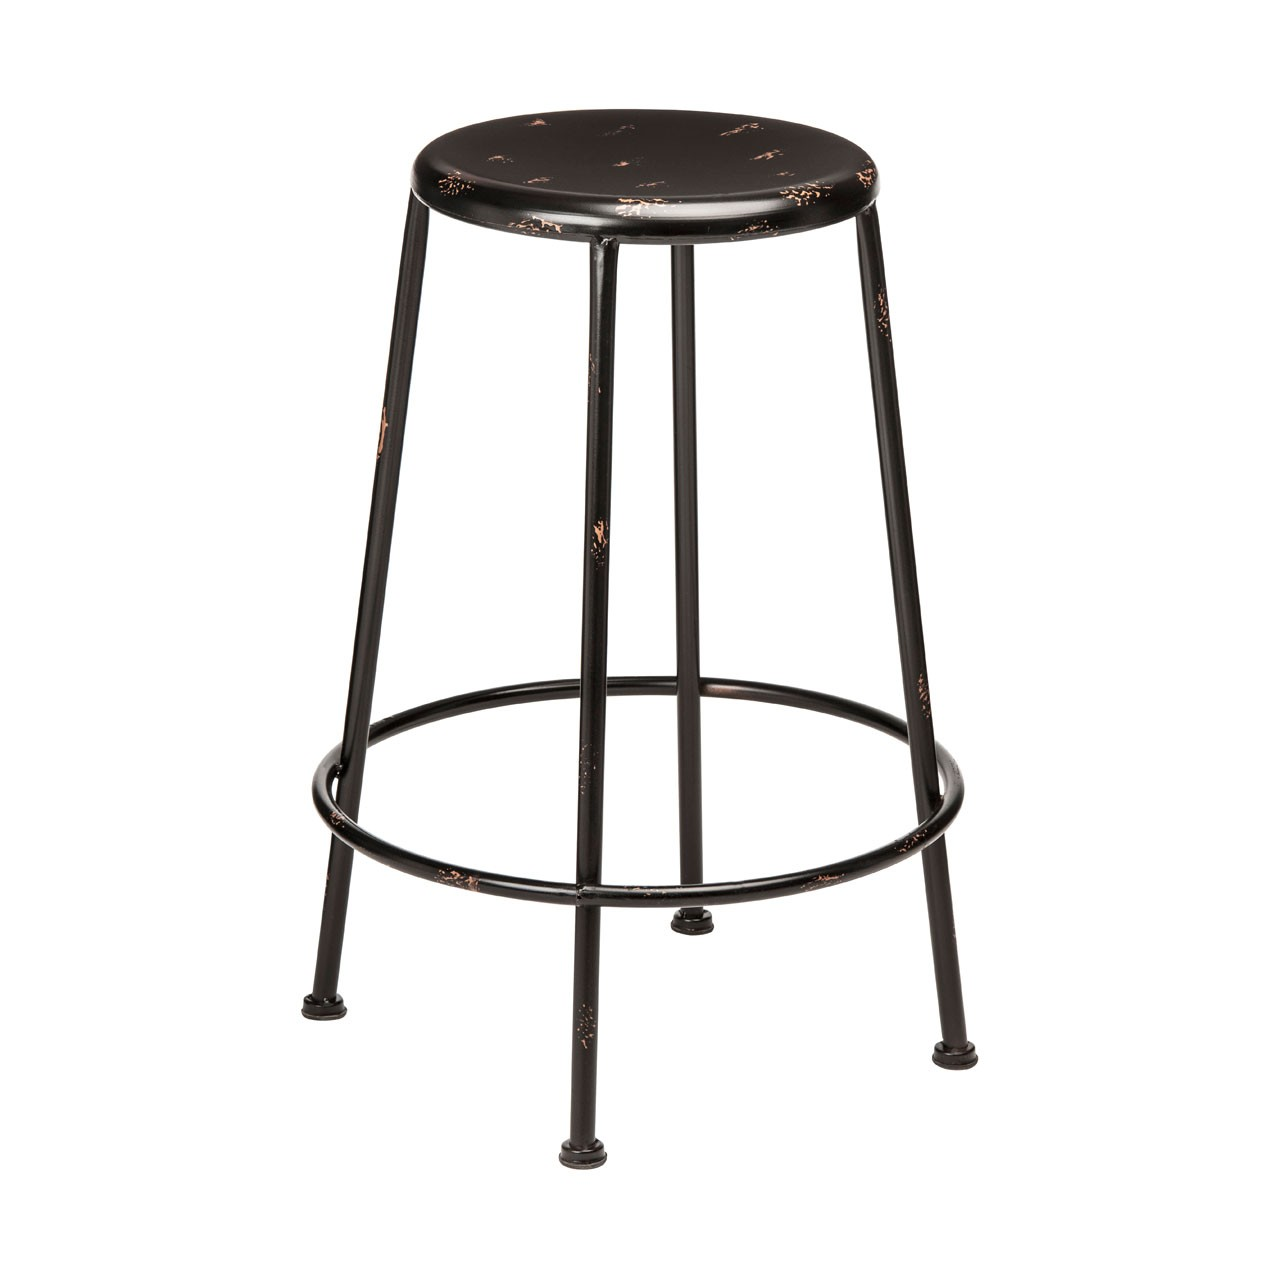 Artisan Stool Black Stool Has Chipped Paint Detail Wonderful